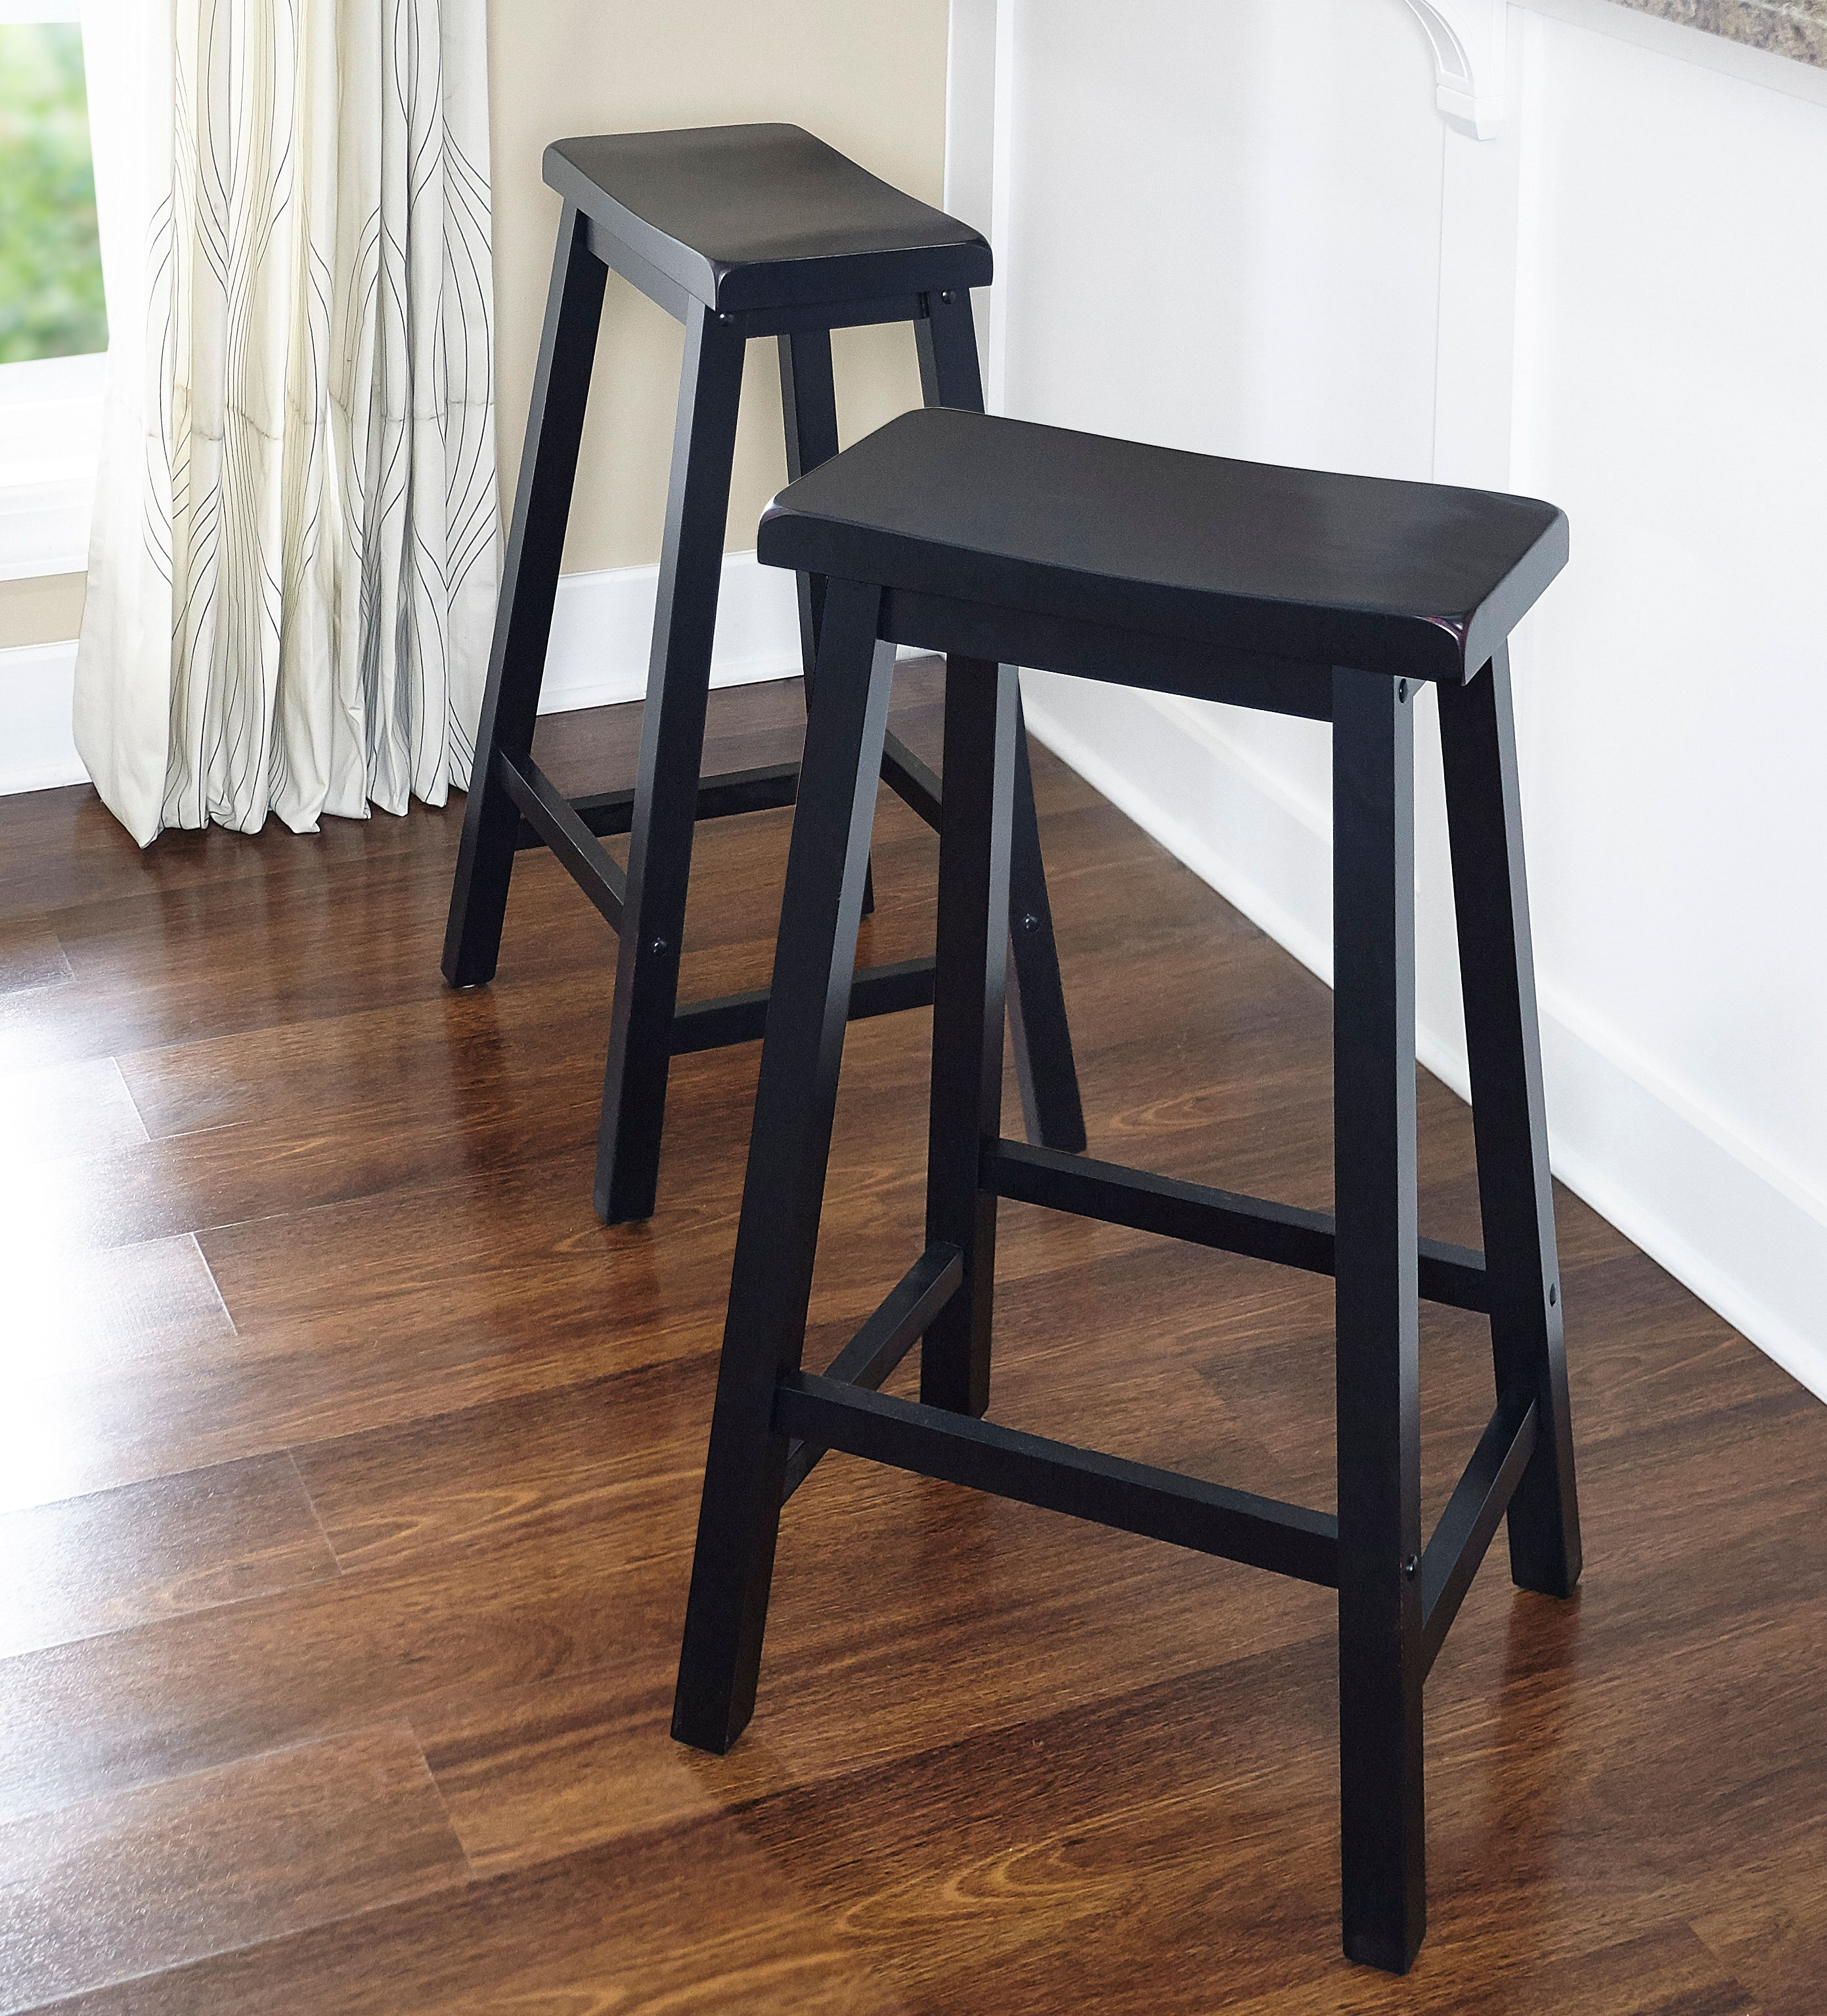 """Powell """"Antique Black"""" with Sand Through Terra Cotta Bar Stool, 29"""" Seat Height by Powell Furniture"""